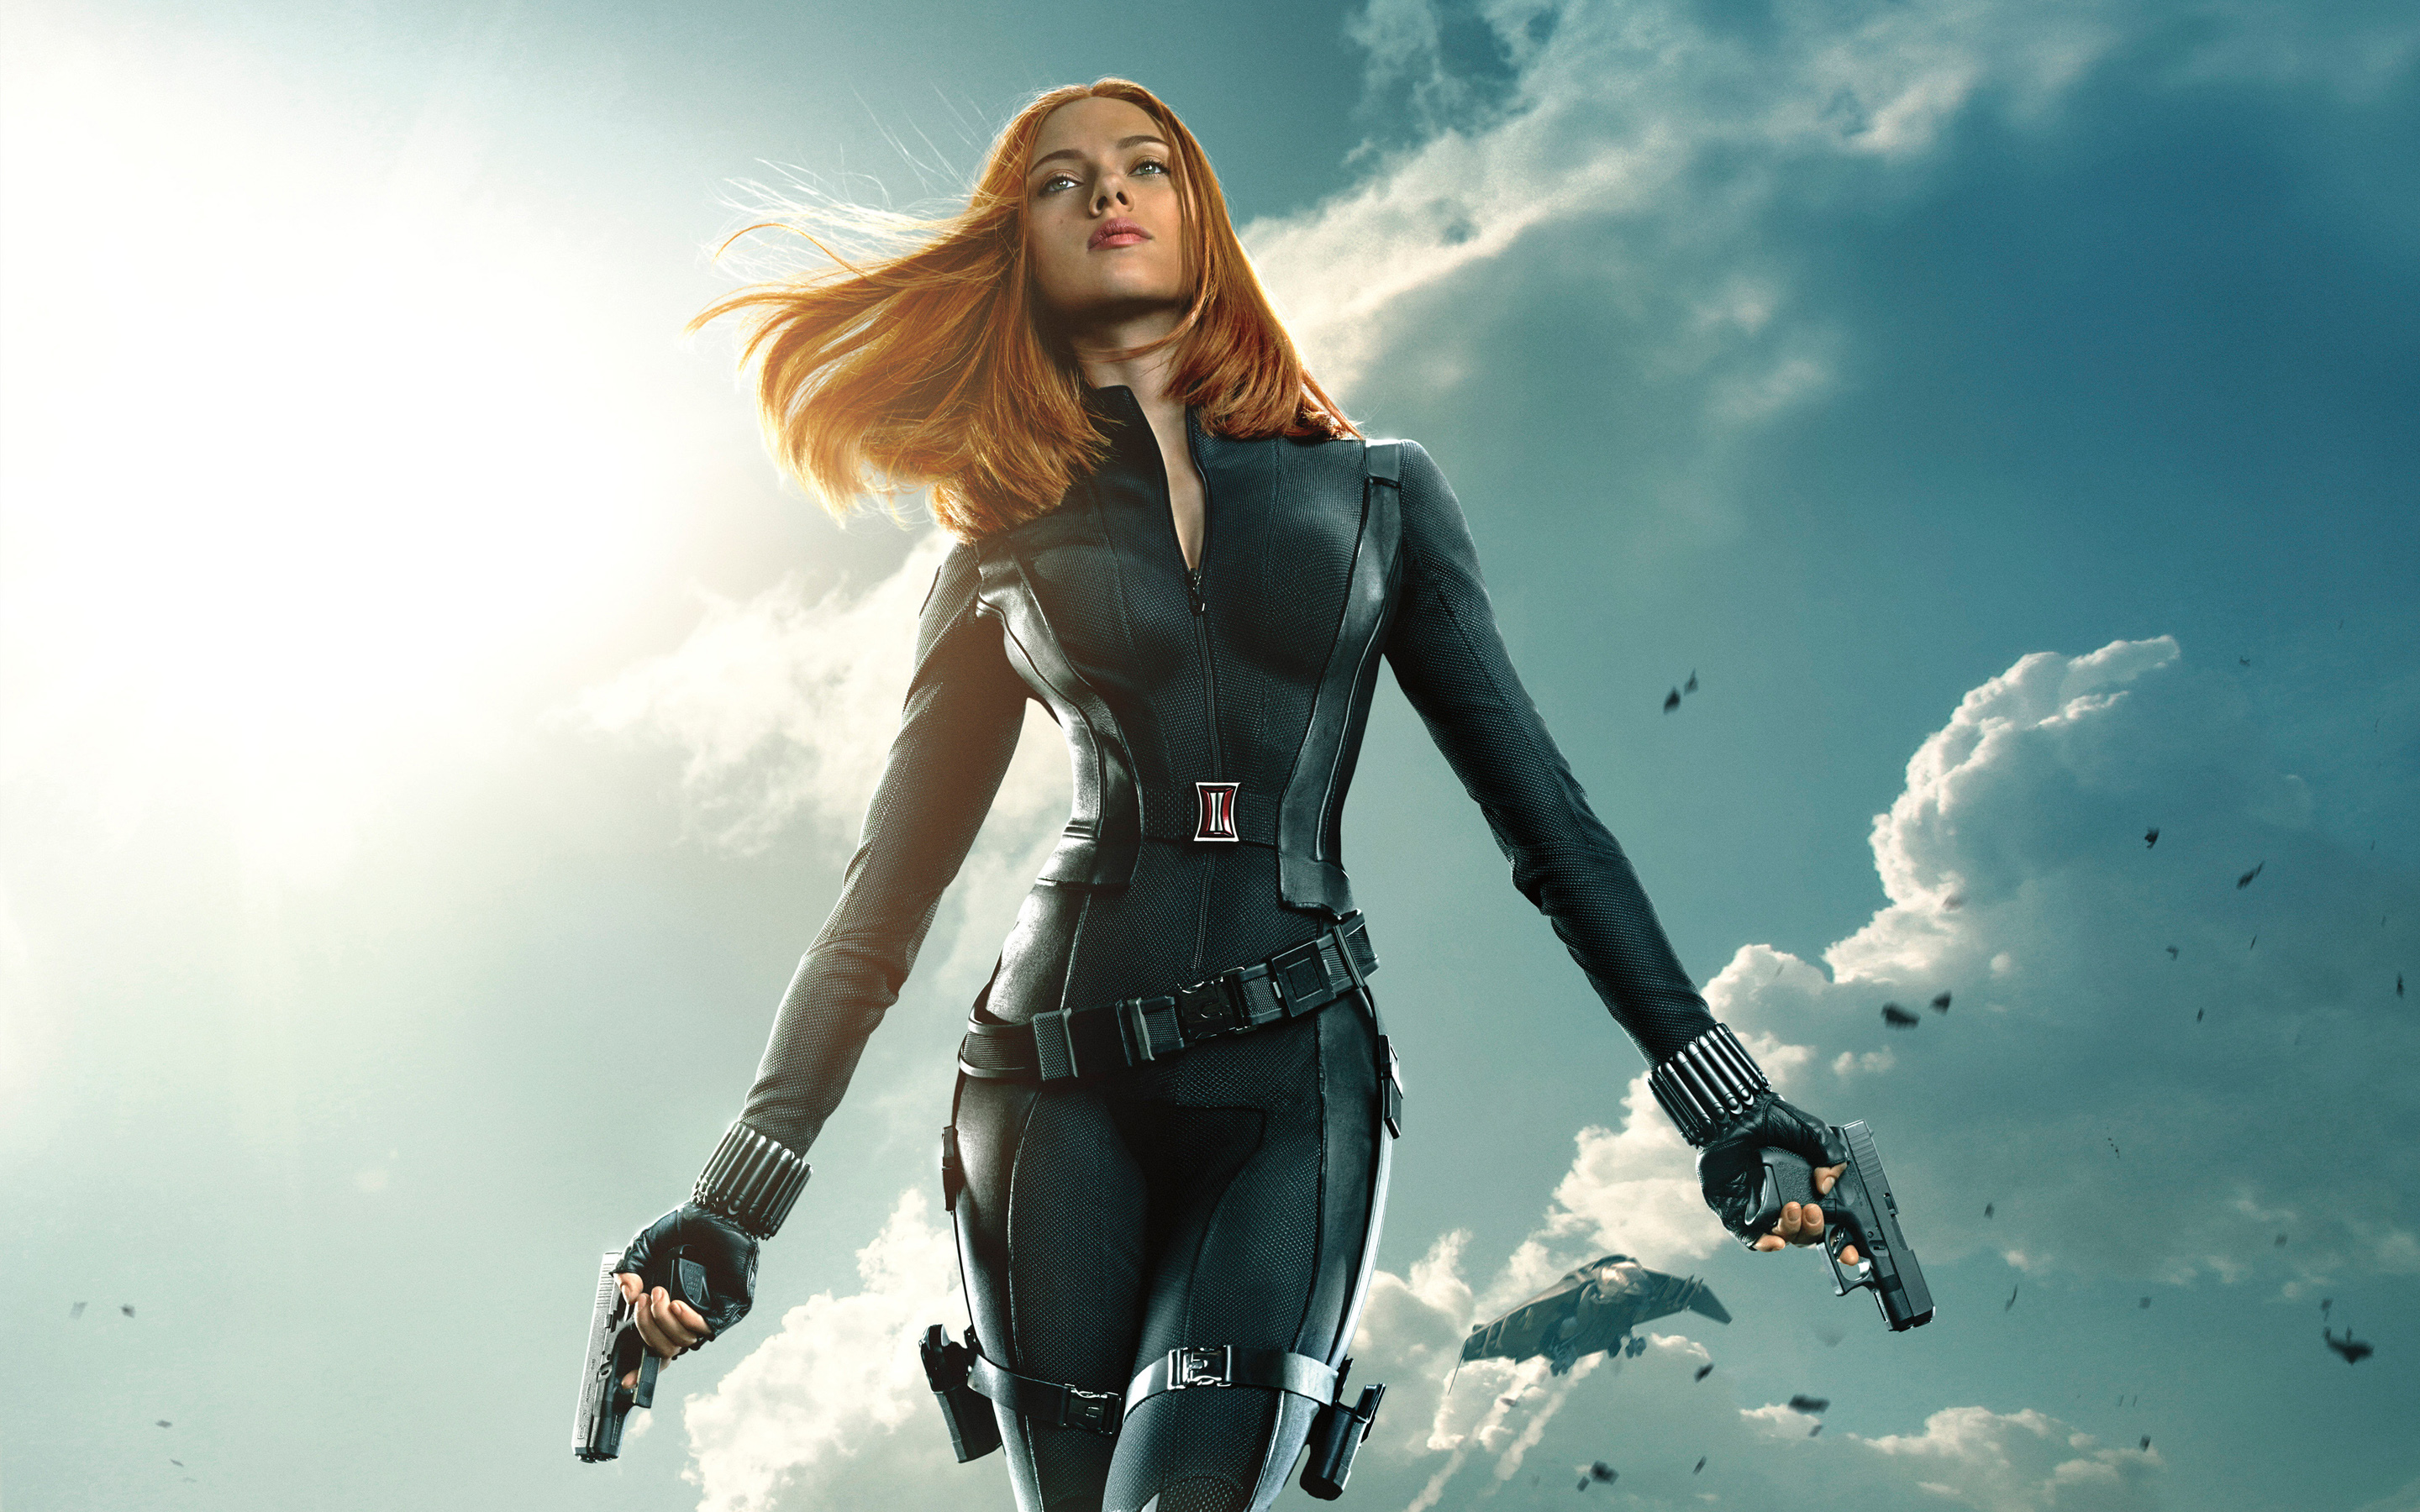 Black Widow Captain America The Winter Soldier Wallpapers HD 2880x1800